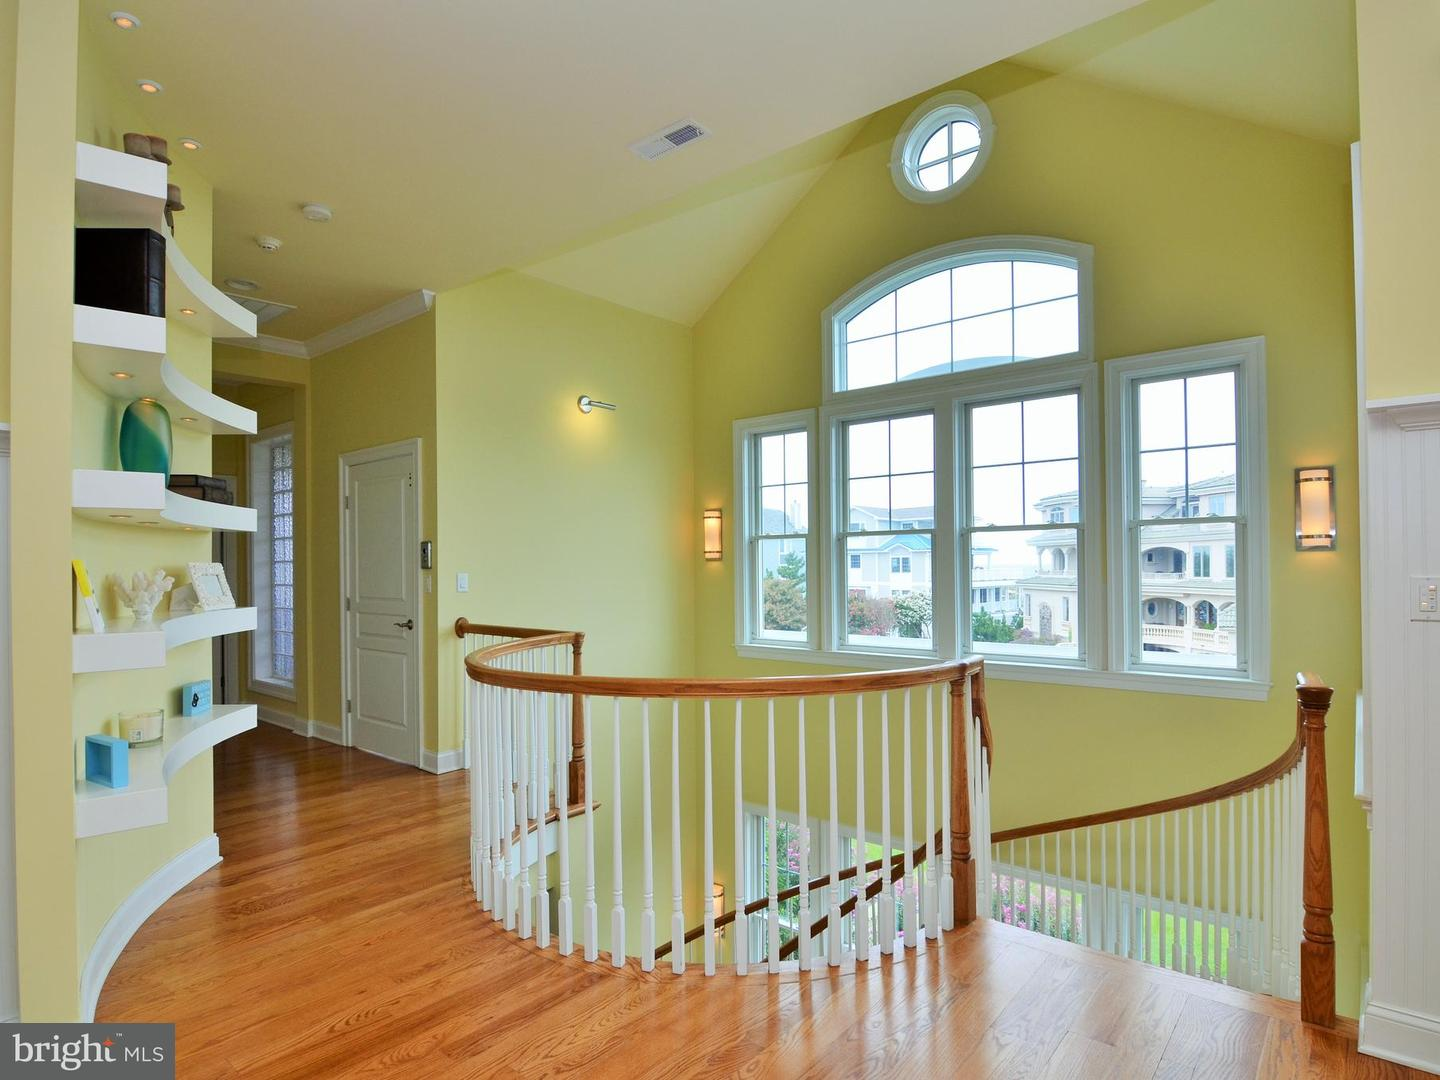 1002293530-300500807643-2018-09-25-15-08-25 31 Hall Ave | Rehoboth Beach, DE Real Estate For Sale | MLS# 1002293530  - 1st Choice Properties